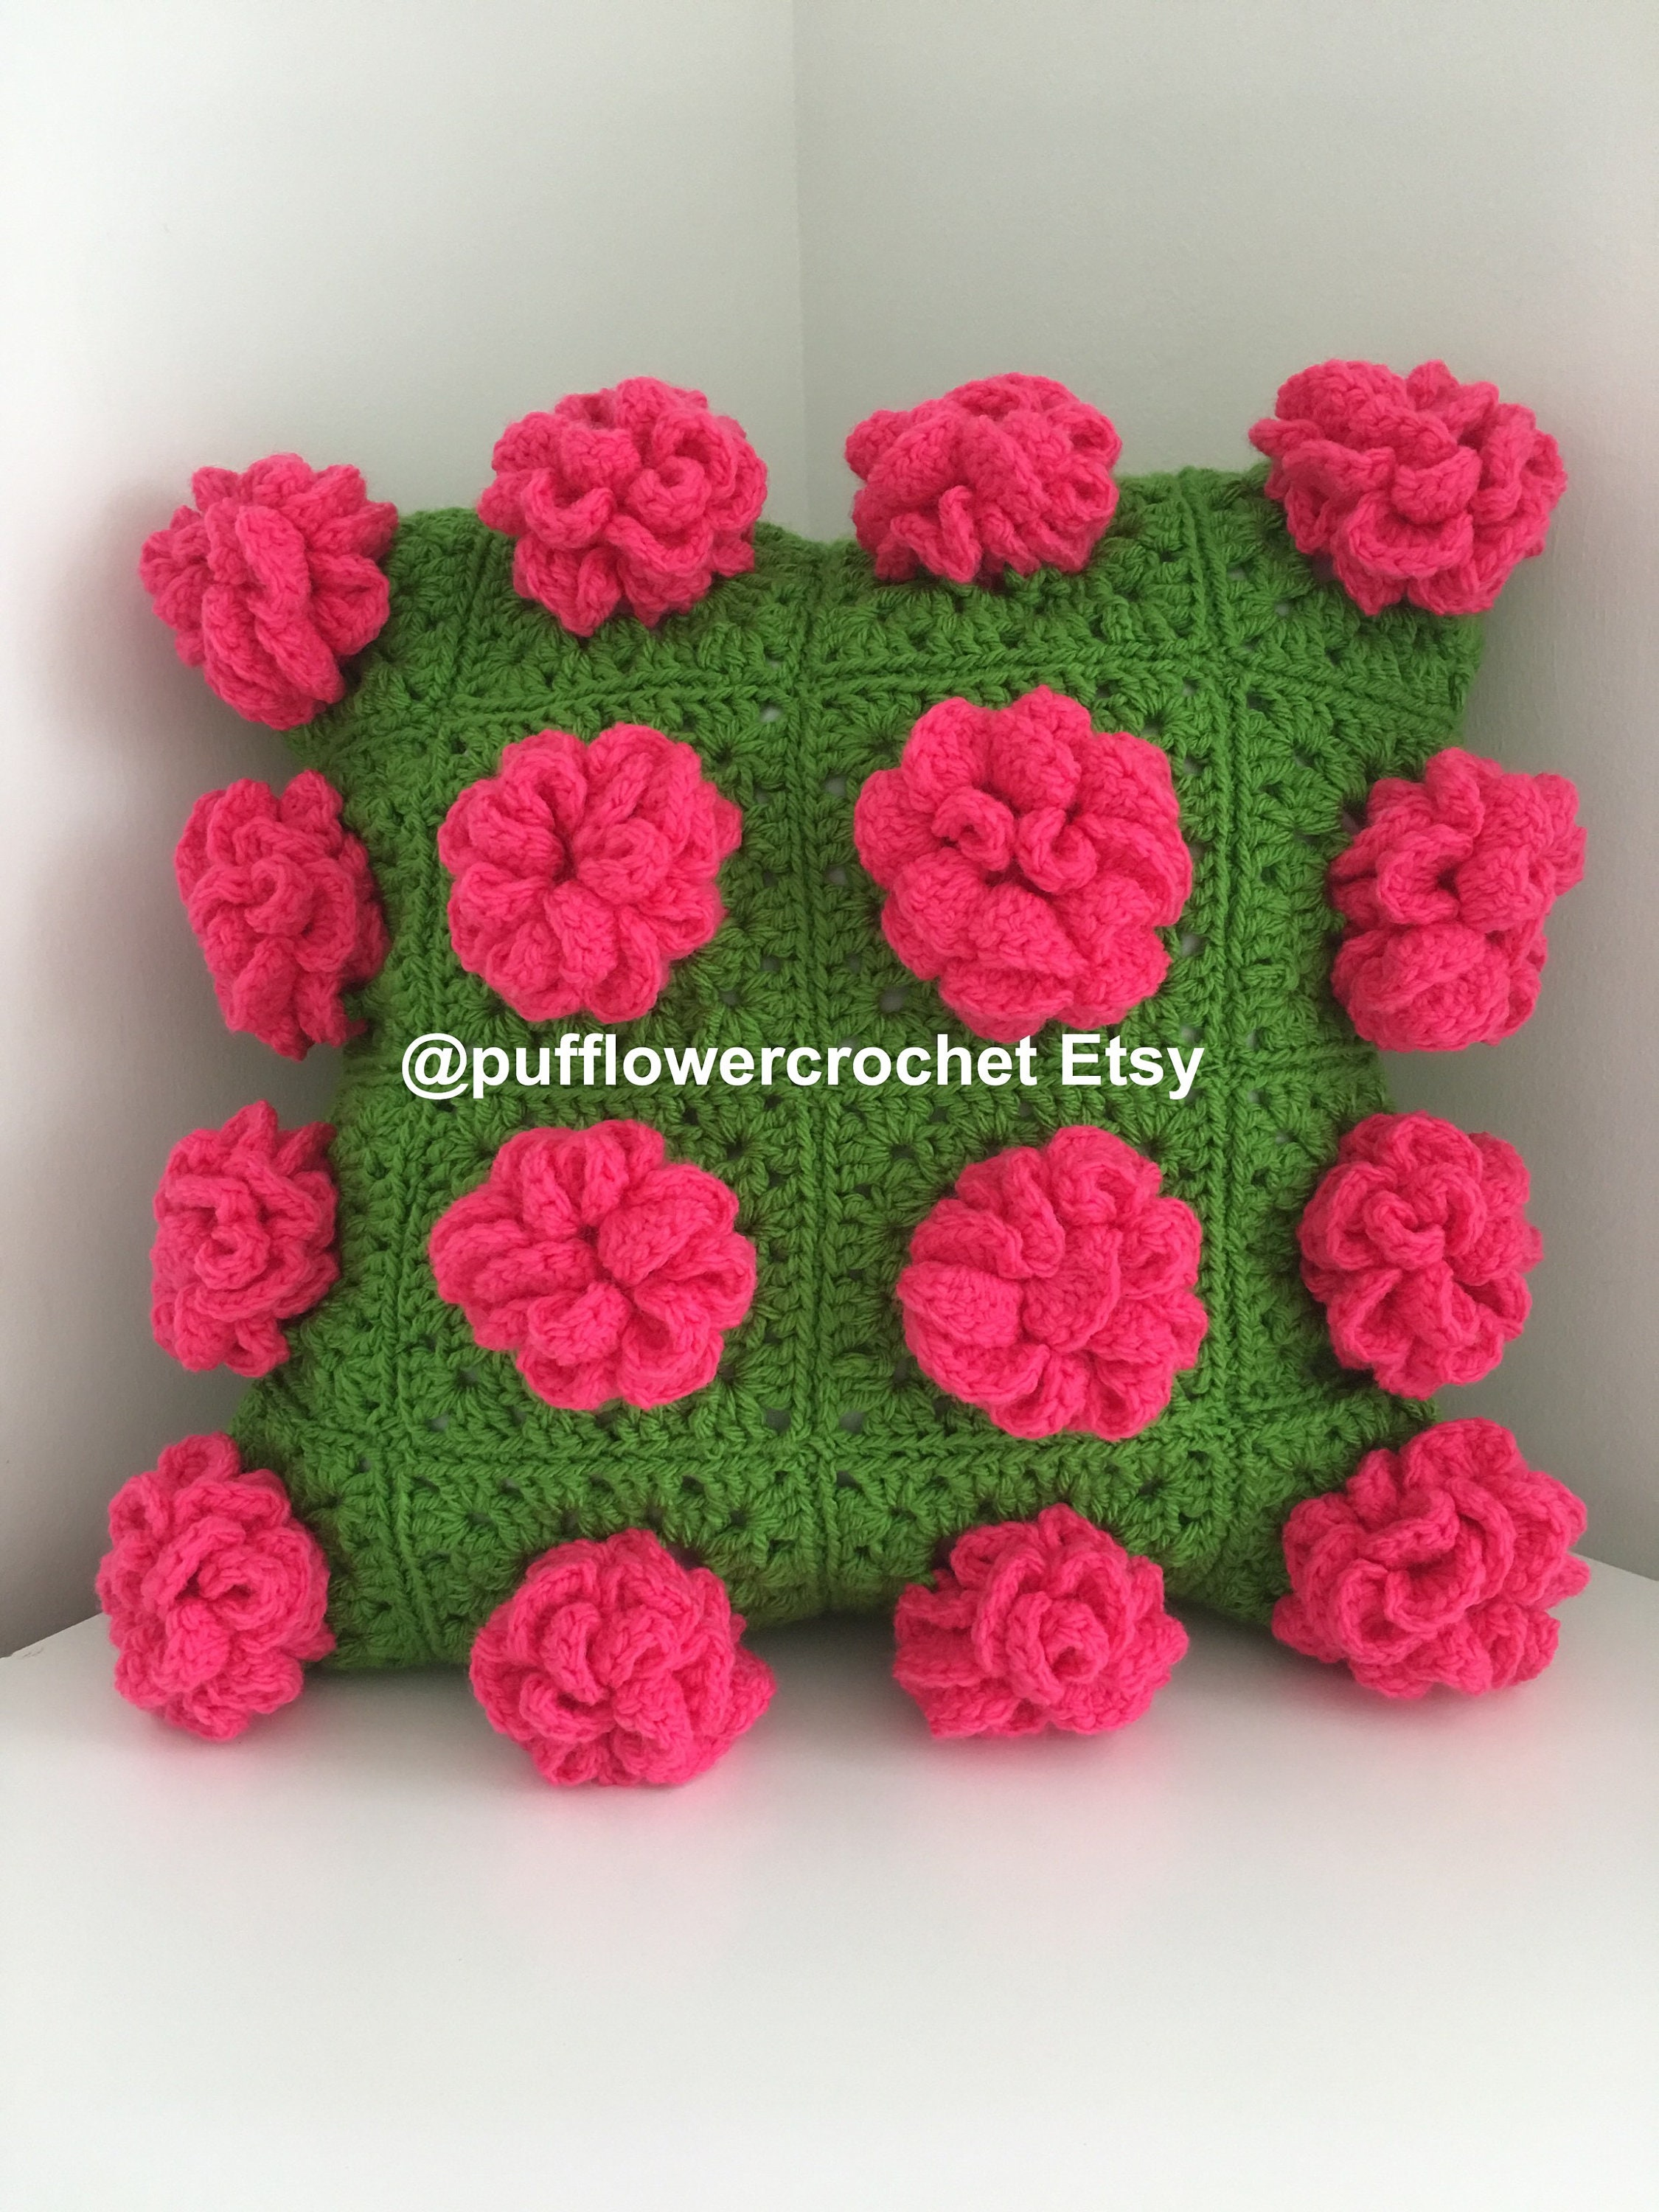 Etsy Cuscini.Cushion Pillow Cuscini Hand Made Crochet Pink Peony Peonies Etsy